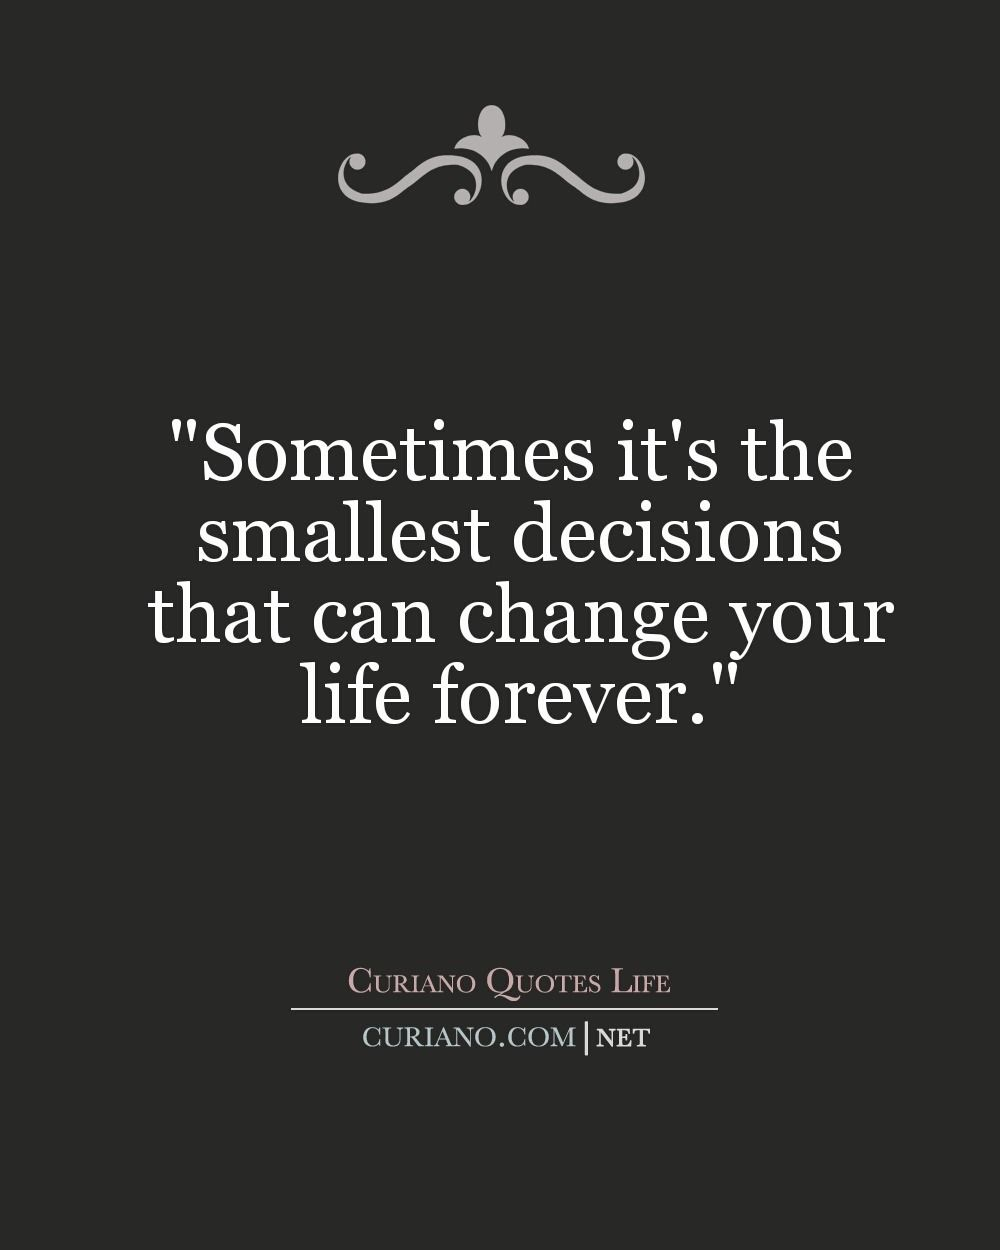 Great Quotes About Life This Blog Curiano Quotes Life Shows Quotes Best Life Quote